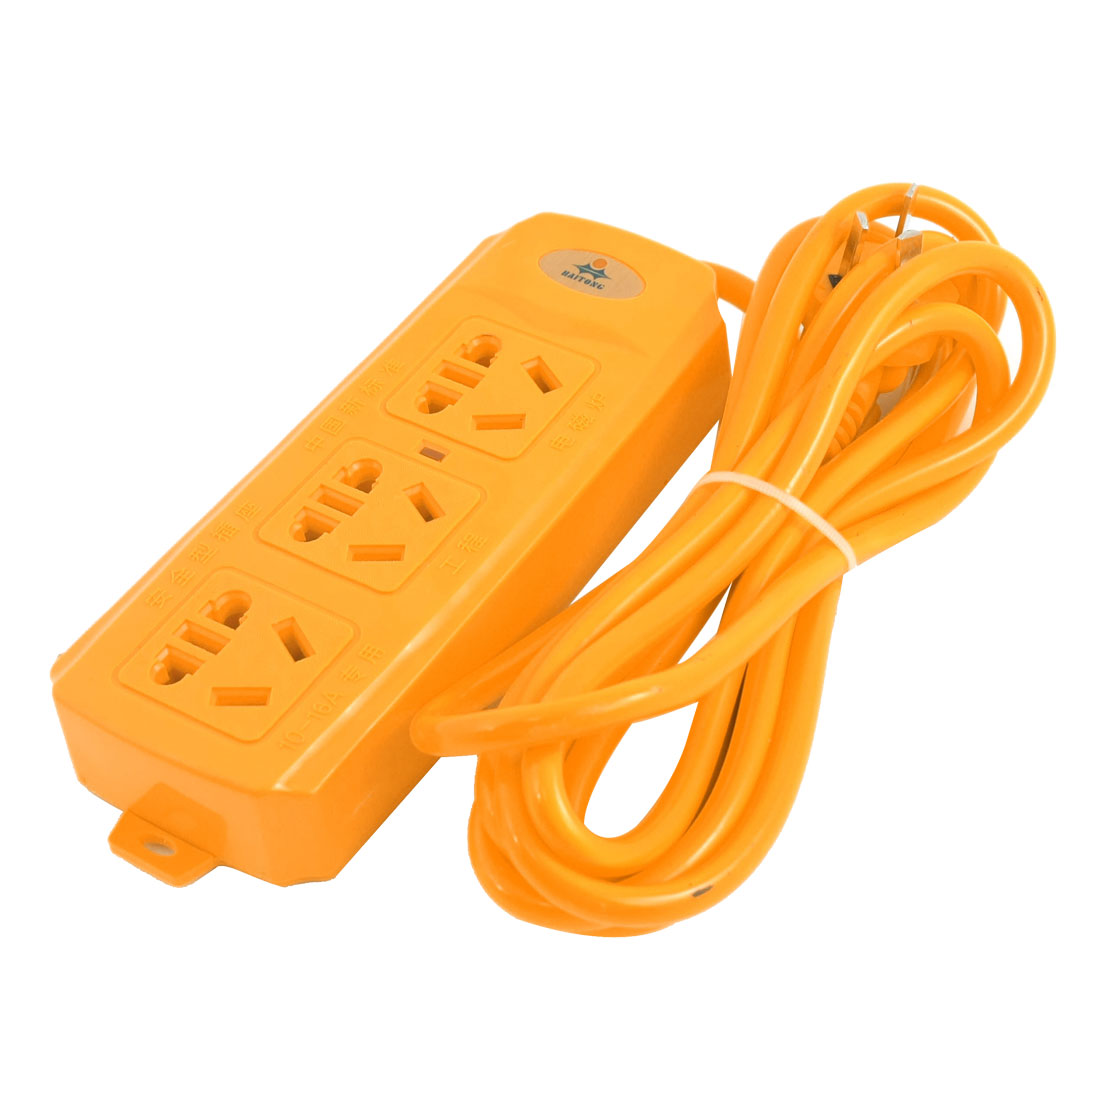 AU Plug 5000W AC 250V Orange Socket Outlet Electric Power Strip Adapter 3 Meter